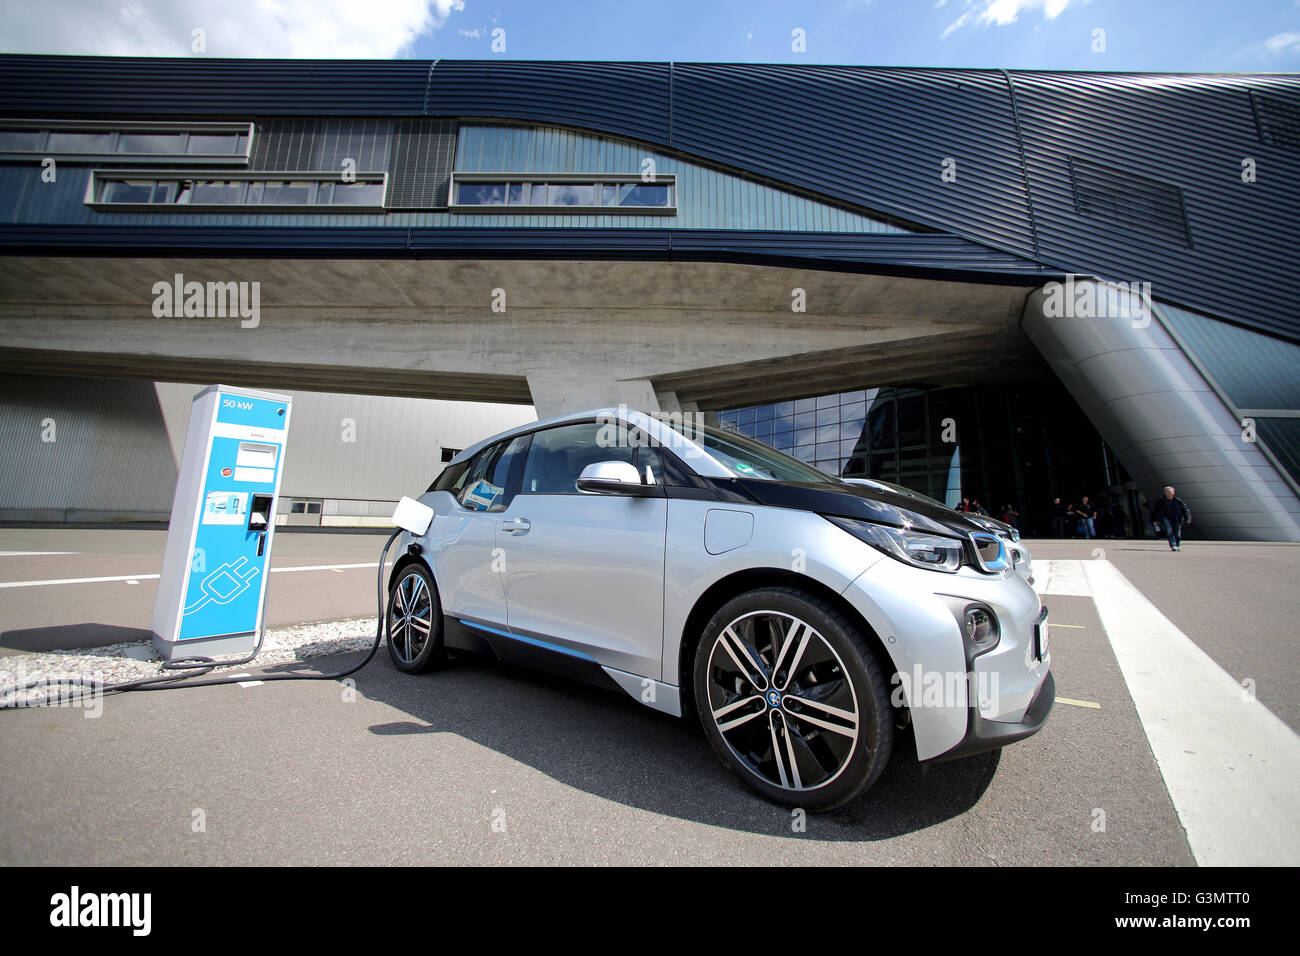 Two Bmw I3 Electric Cars In Front Of The Bmw Factory In Leipzig